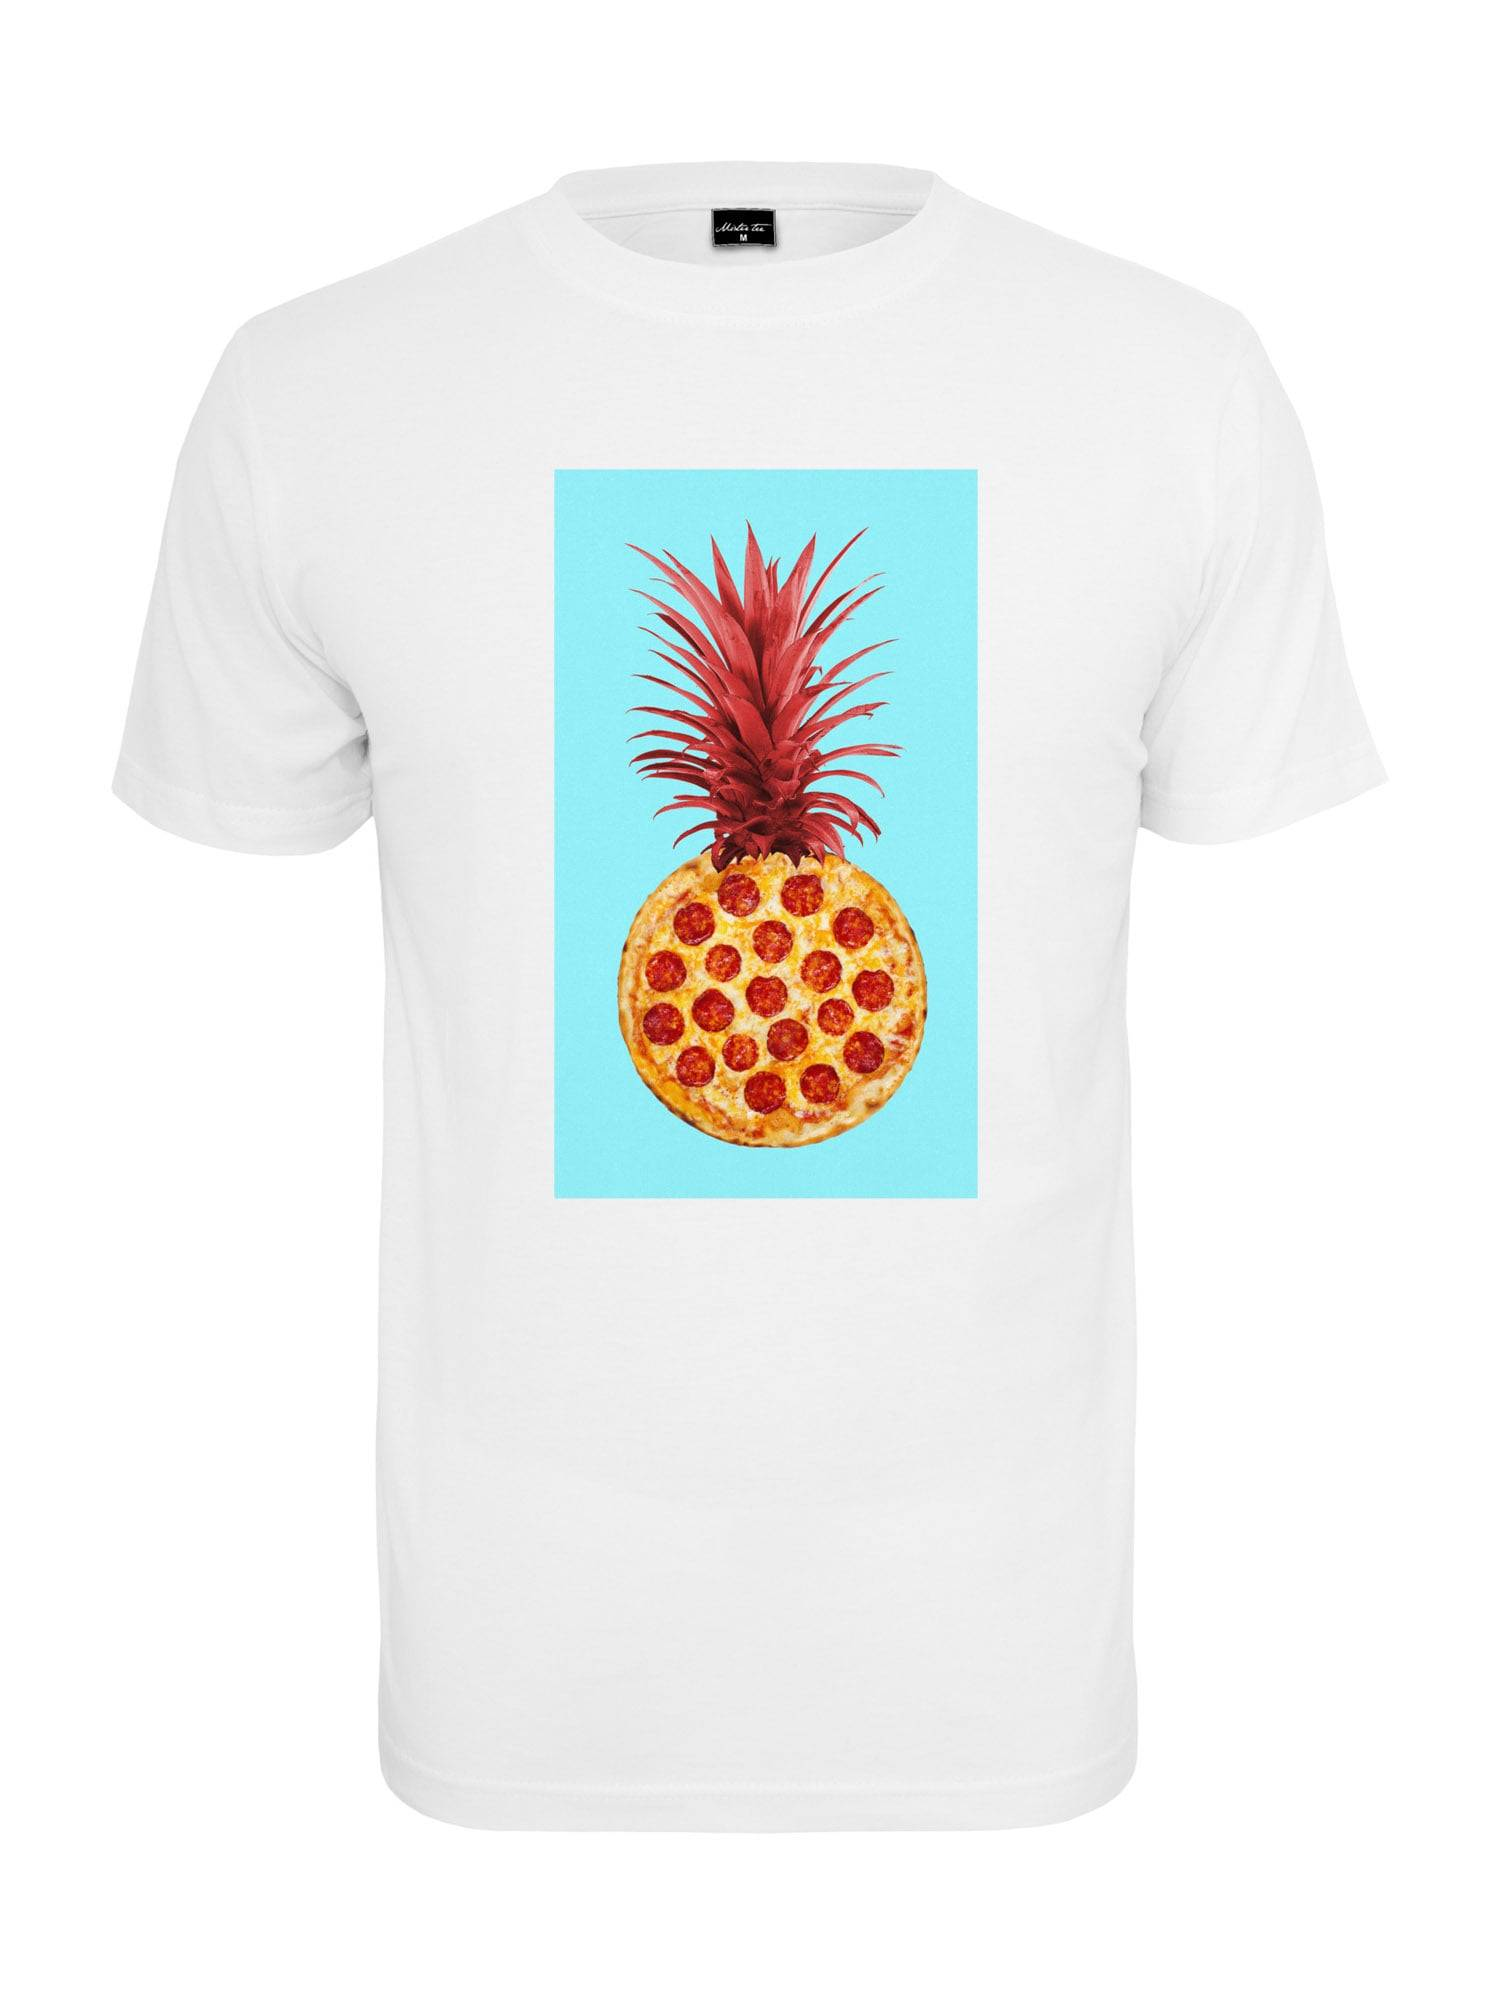 Tee T-Shirt 'Pizza Pineapple'  - Blanc - Taille: L - male